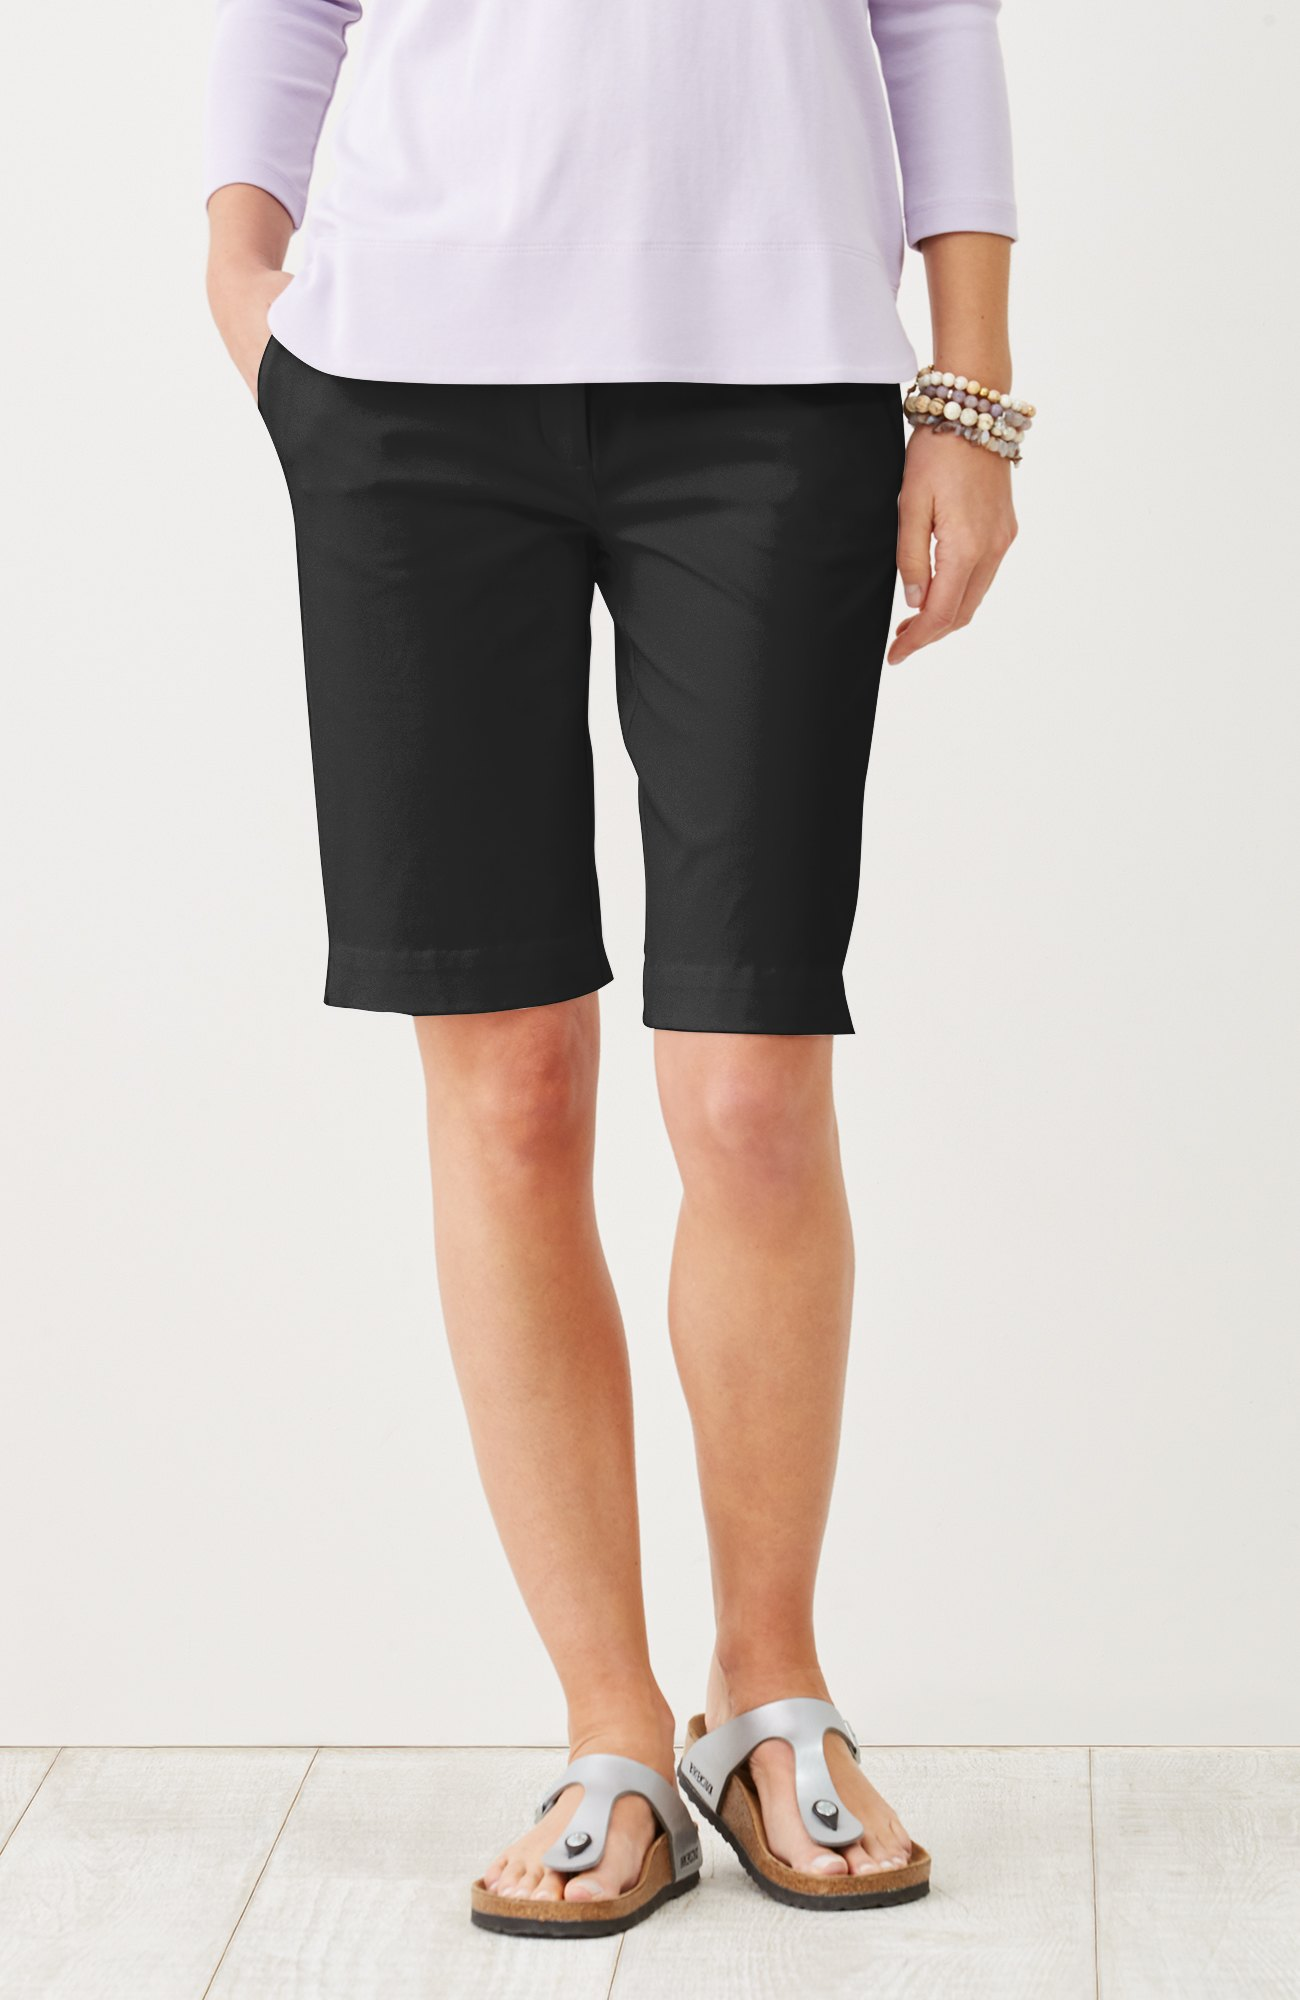 cotton-stretch walking shorts